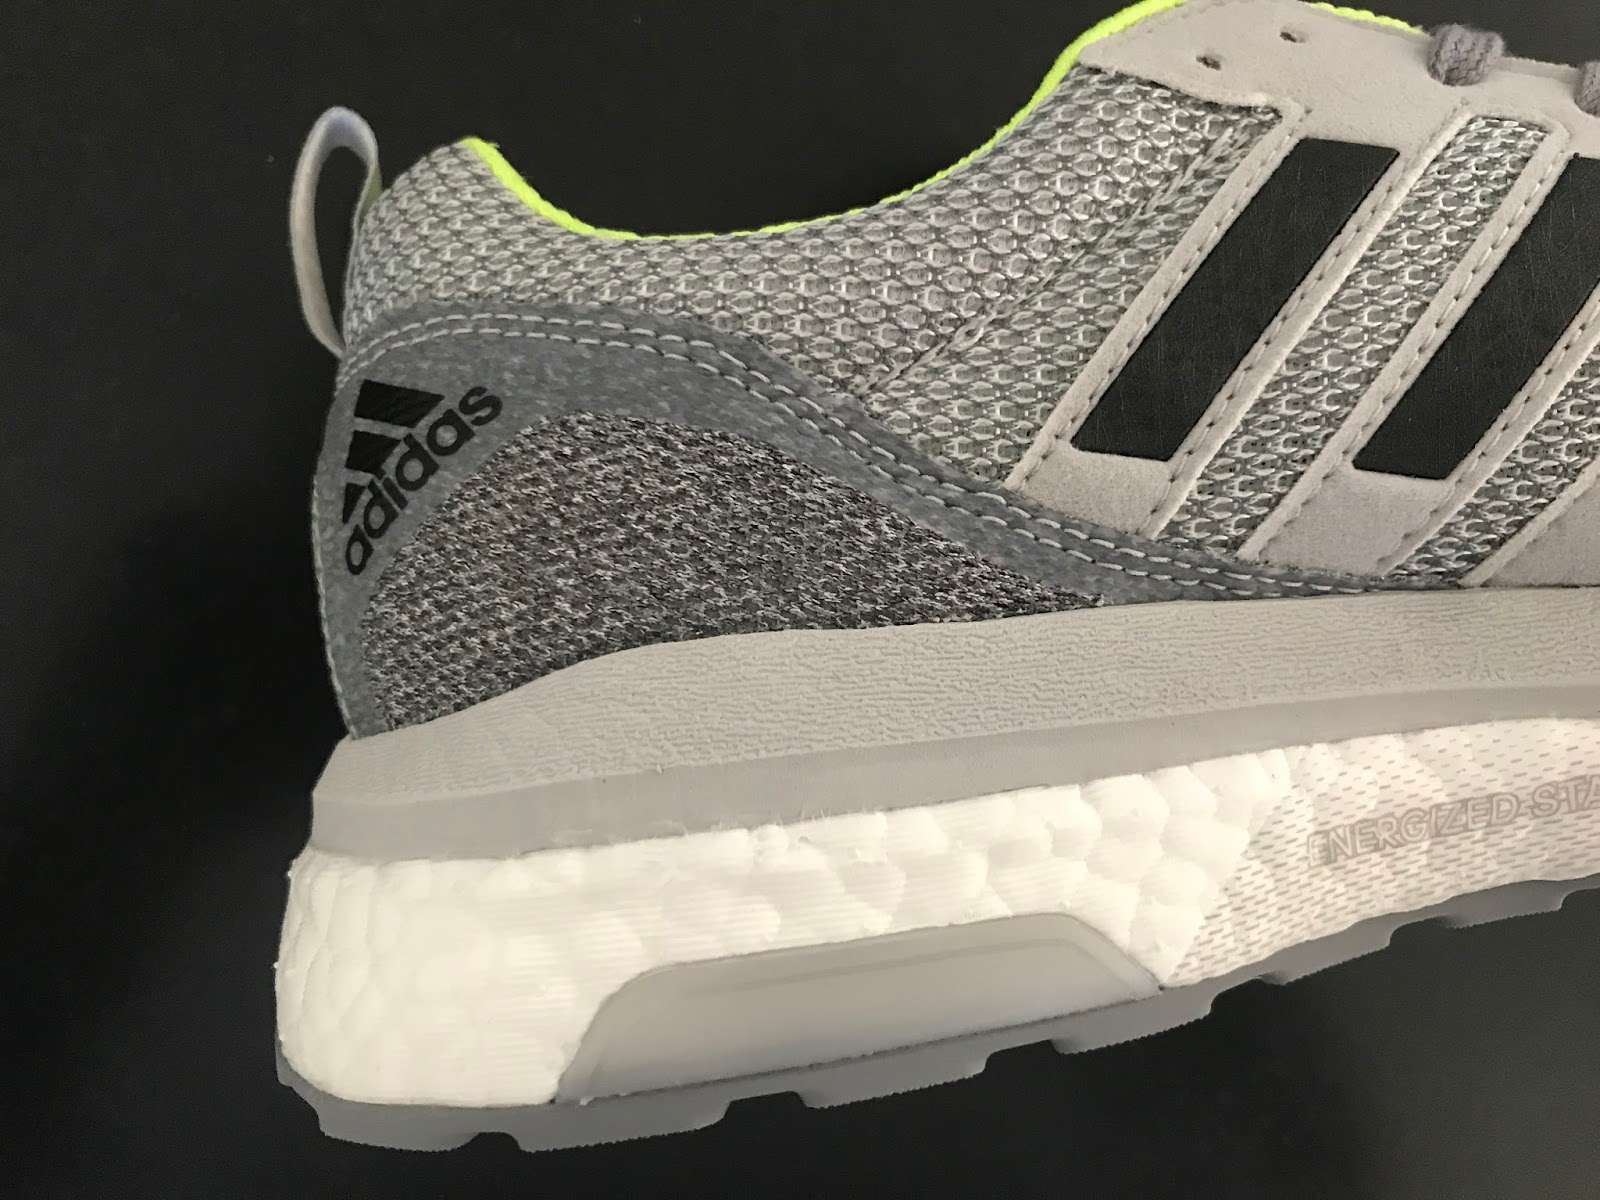 c535f58feedda the gray EVA layer extends the full length of the shoe underfoot